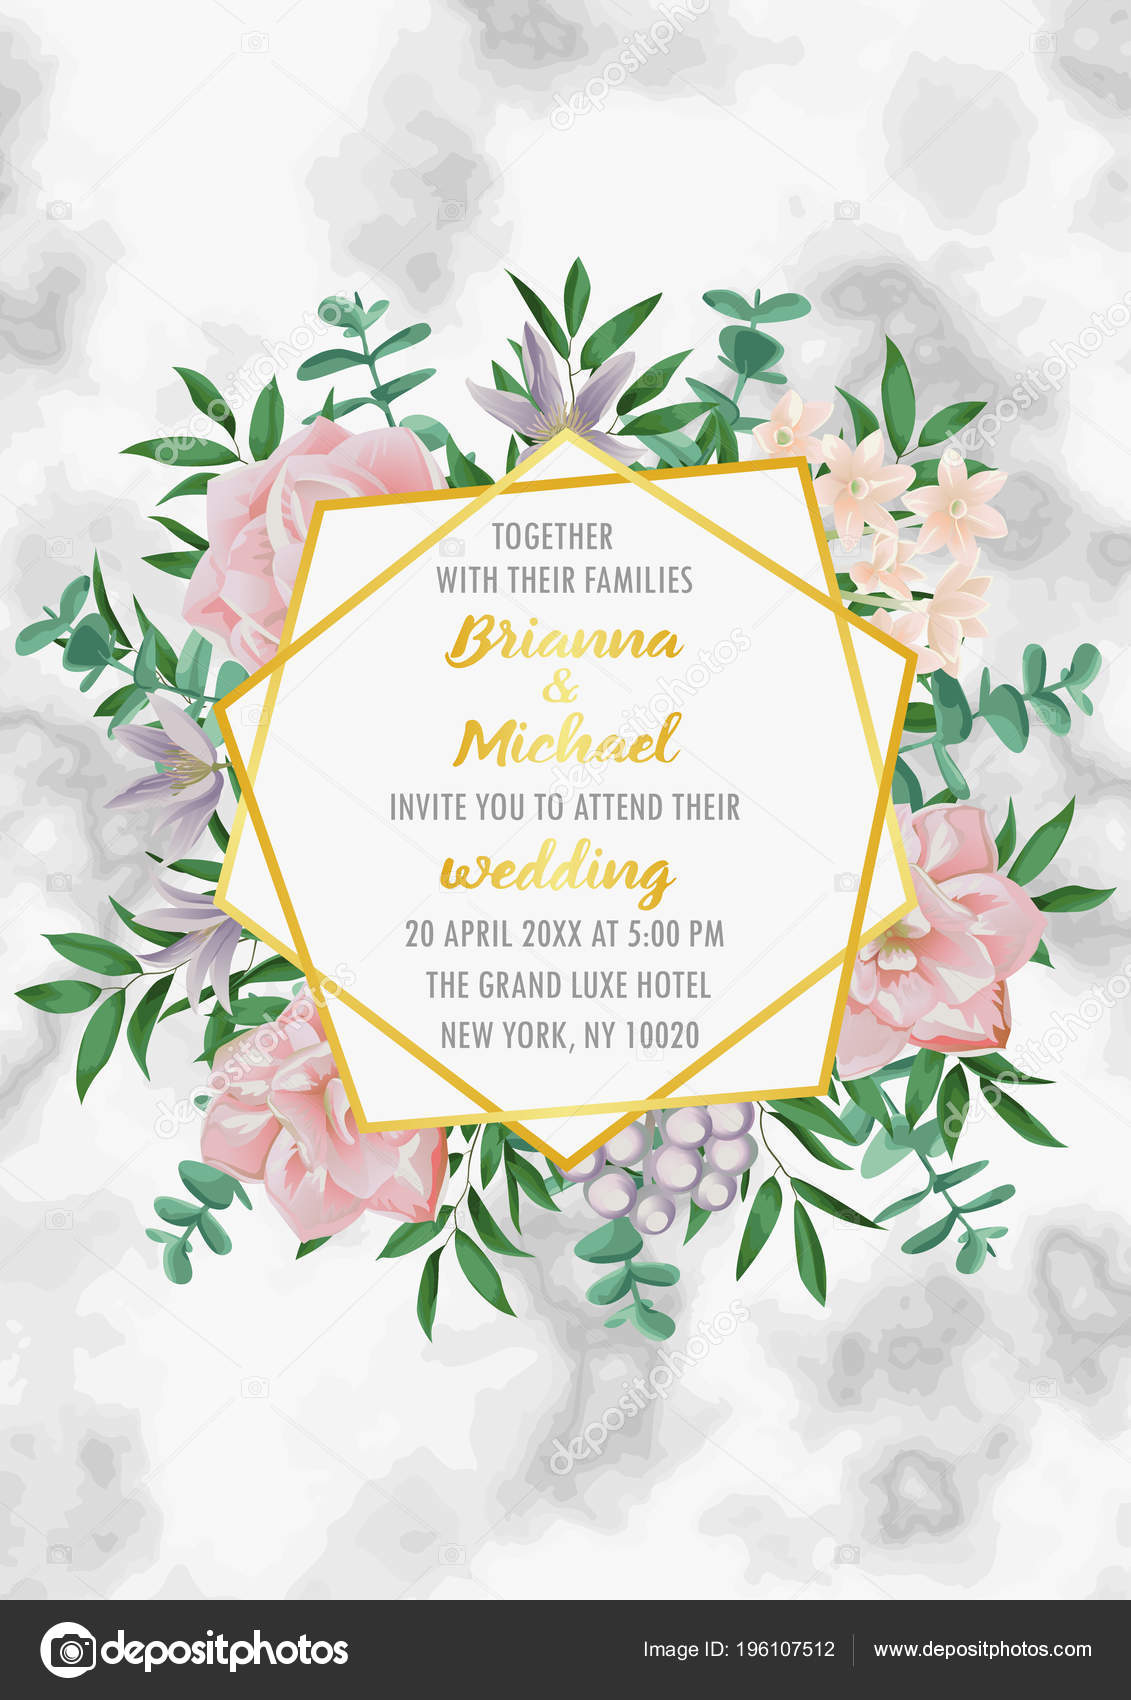 Wedding Invitation With Geometric Frame Flowers And Greenery